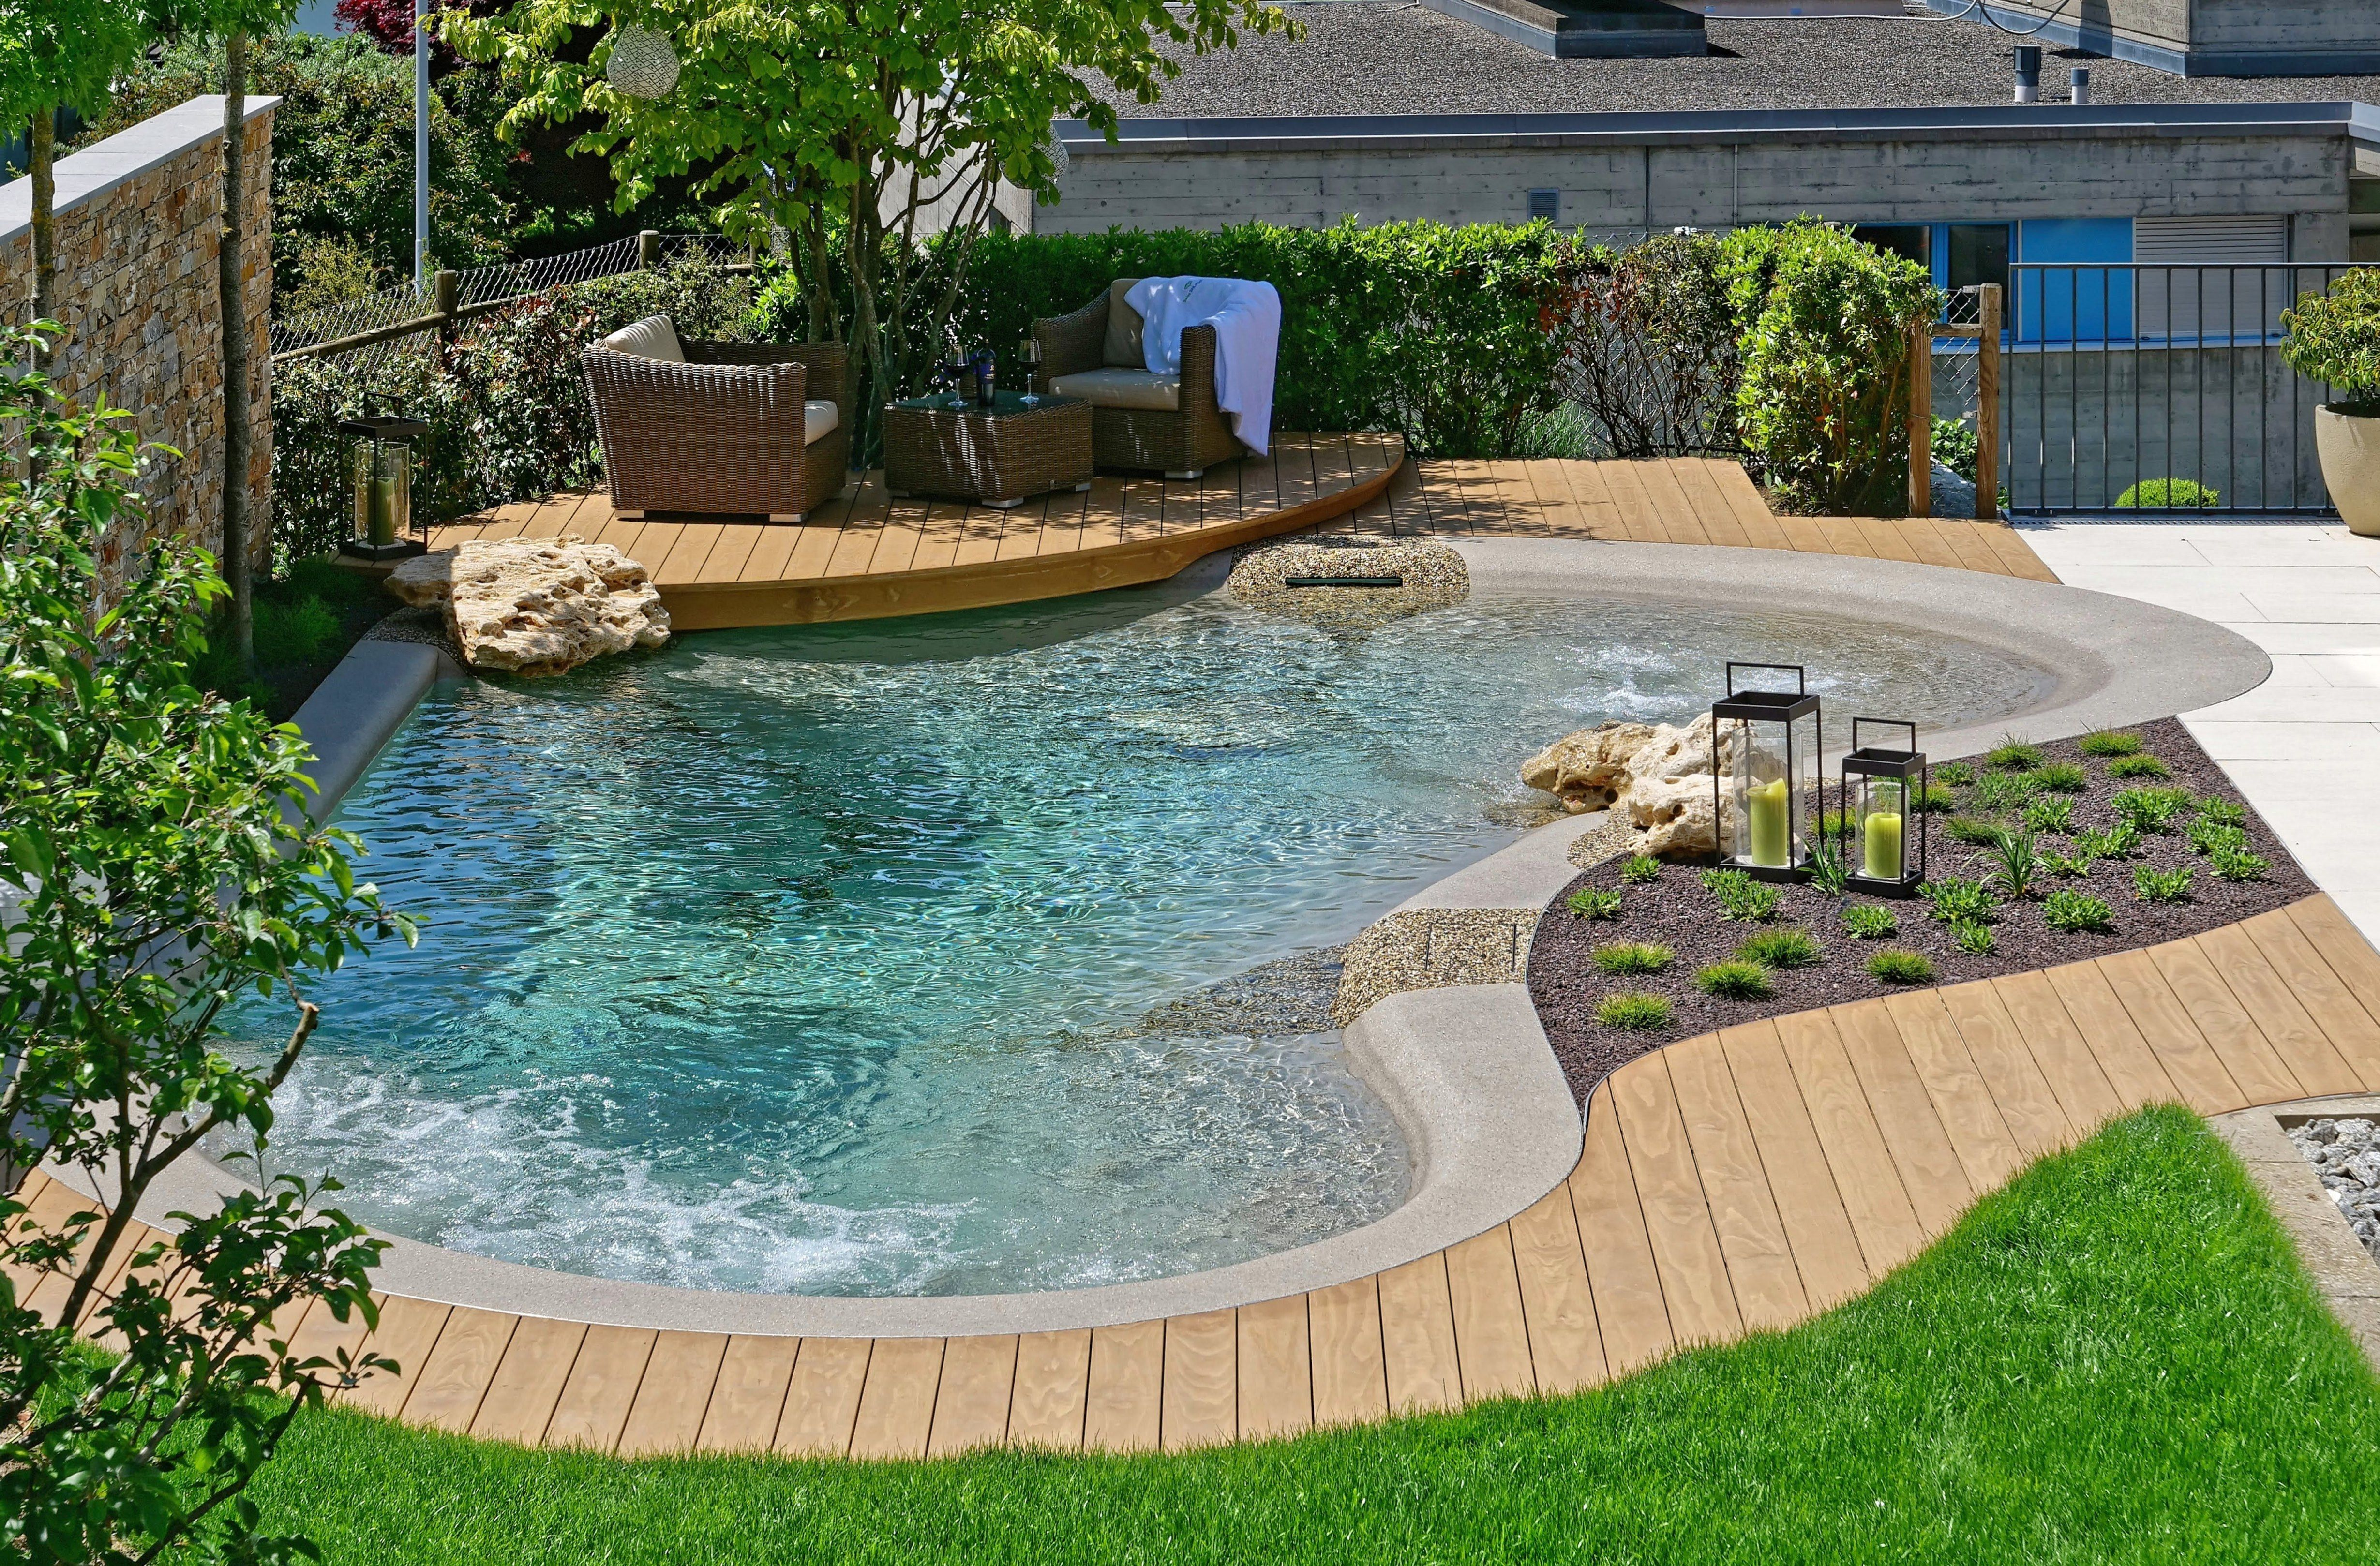 The Biodesign Pool In Every Garden Integrate And Gives This A Distinctive Atmosphere In 2020 Swimming Pools Backyard Pool Landscaping Small Pool Design